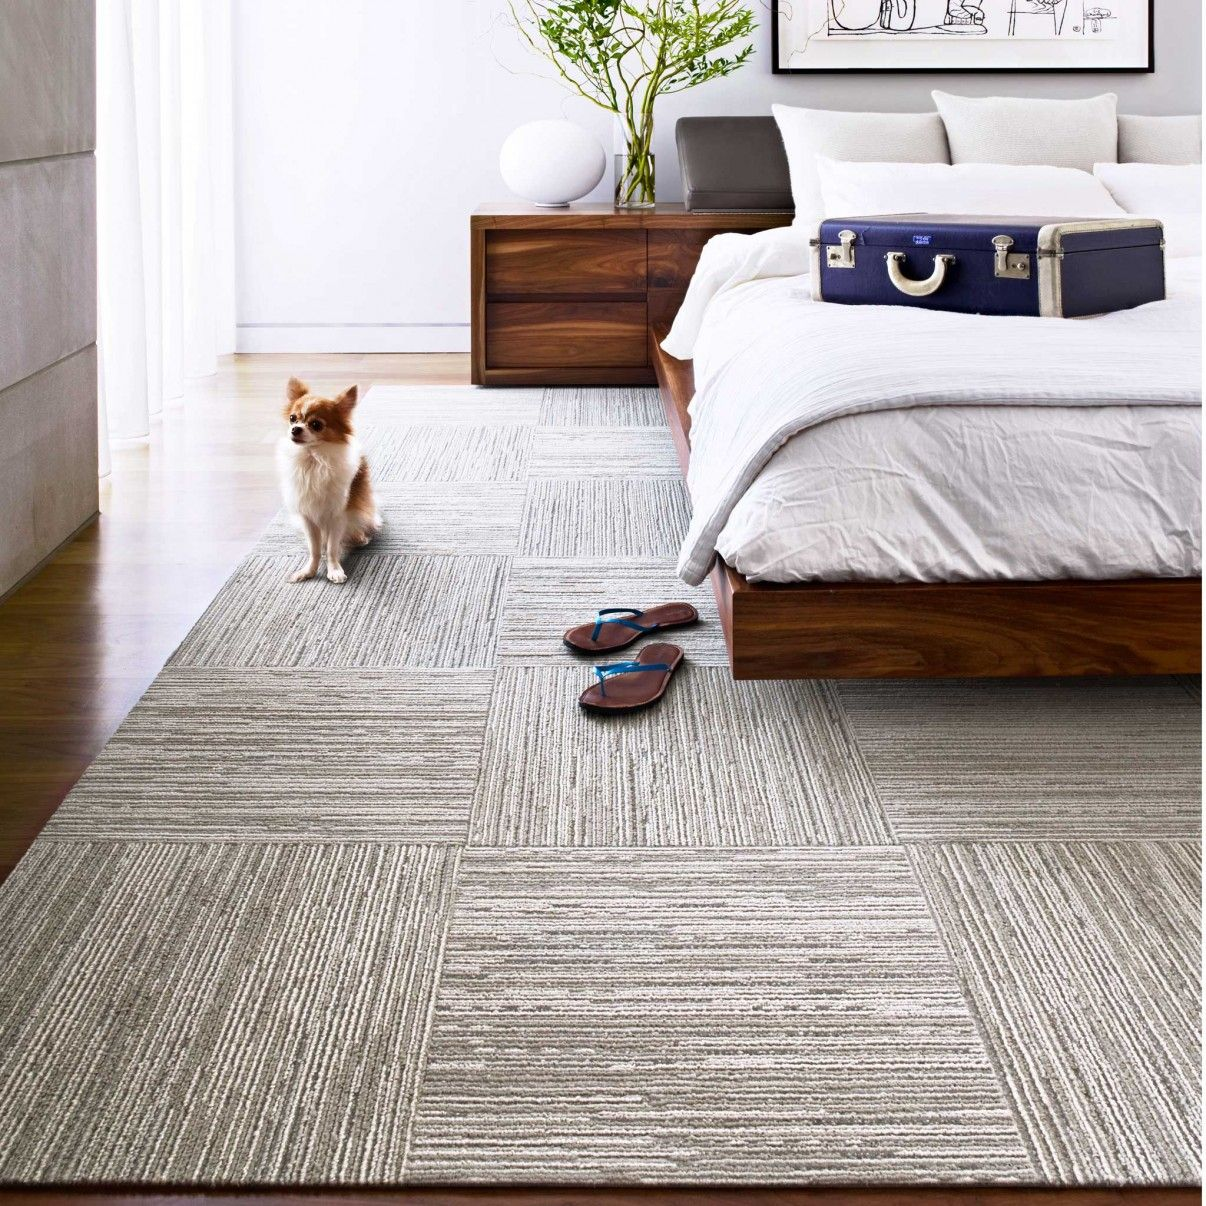 Design Flor Tiles lacebark patchwork bedrooms and contemporary rugs flor carpet tiles i like the detail yet soothing neutrals especially for